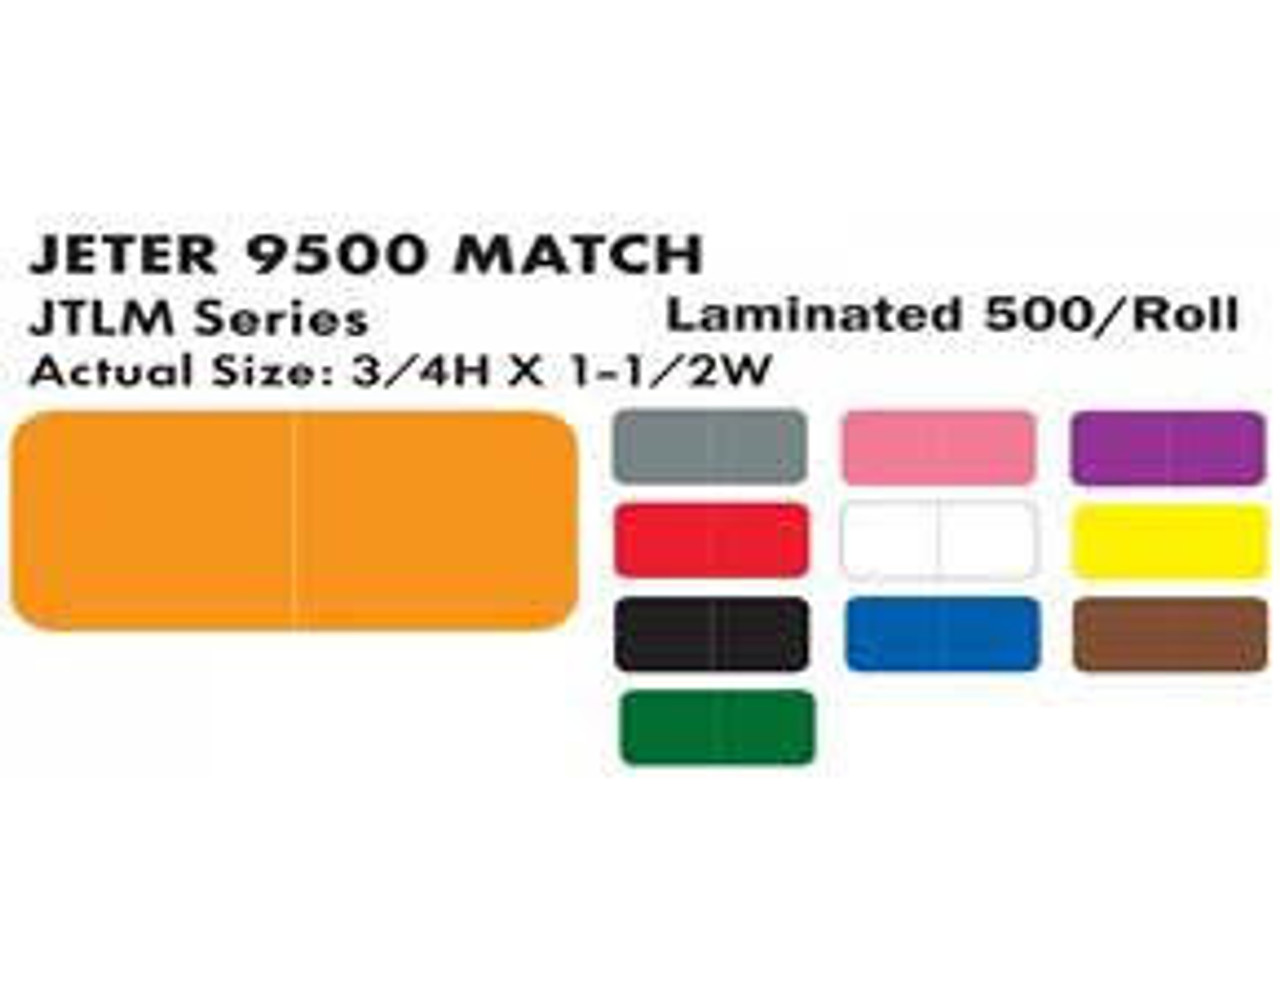 Laminated Roll of 500 Solid Designation Label 3//4H x 1-1//2W Jeter Compatible Green